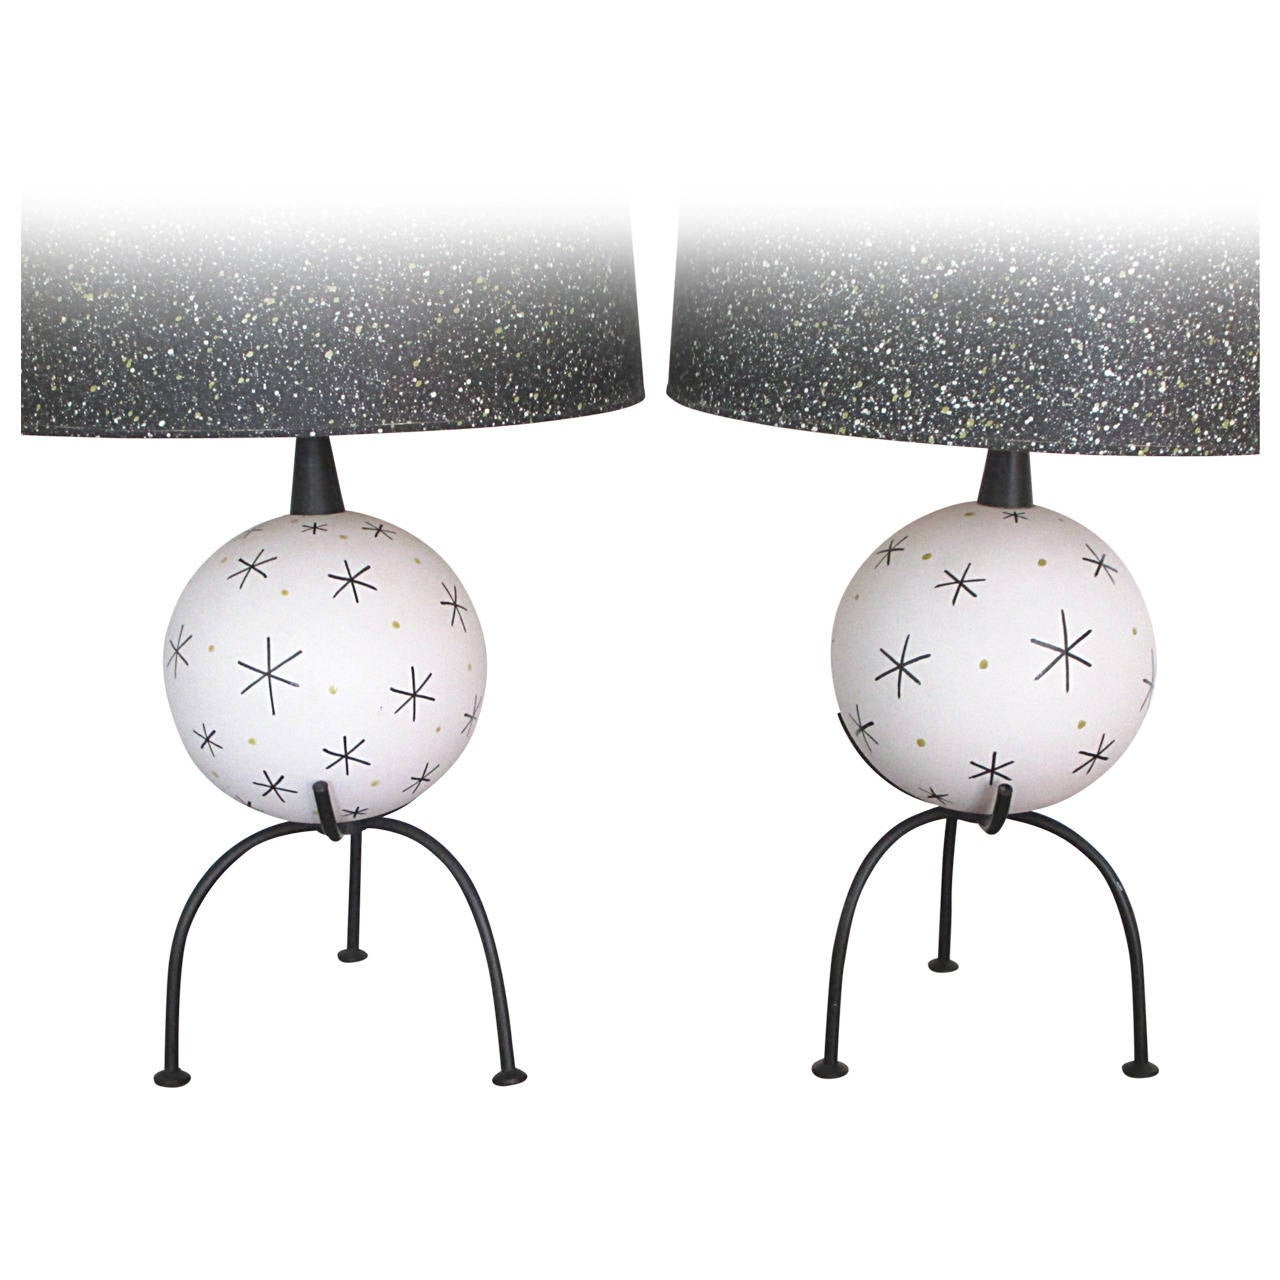 Pair of Atomic Age Table Lamps